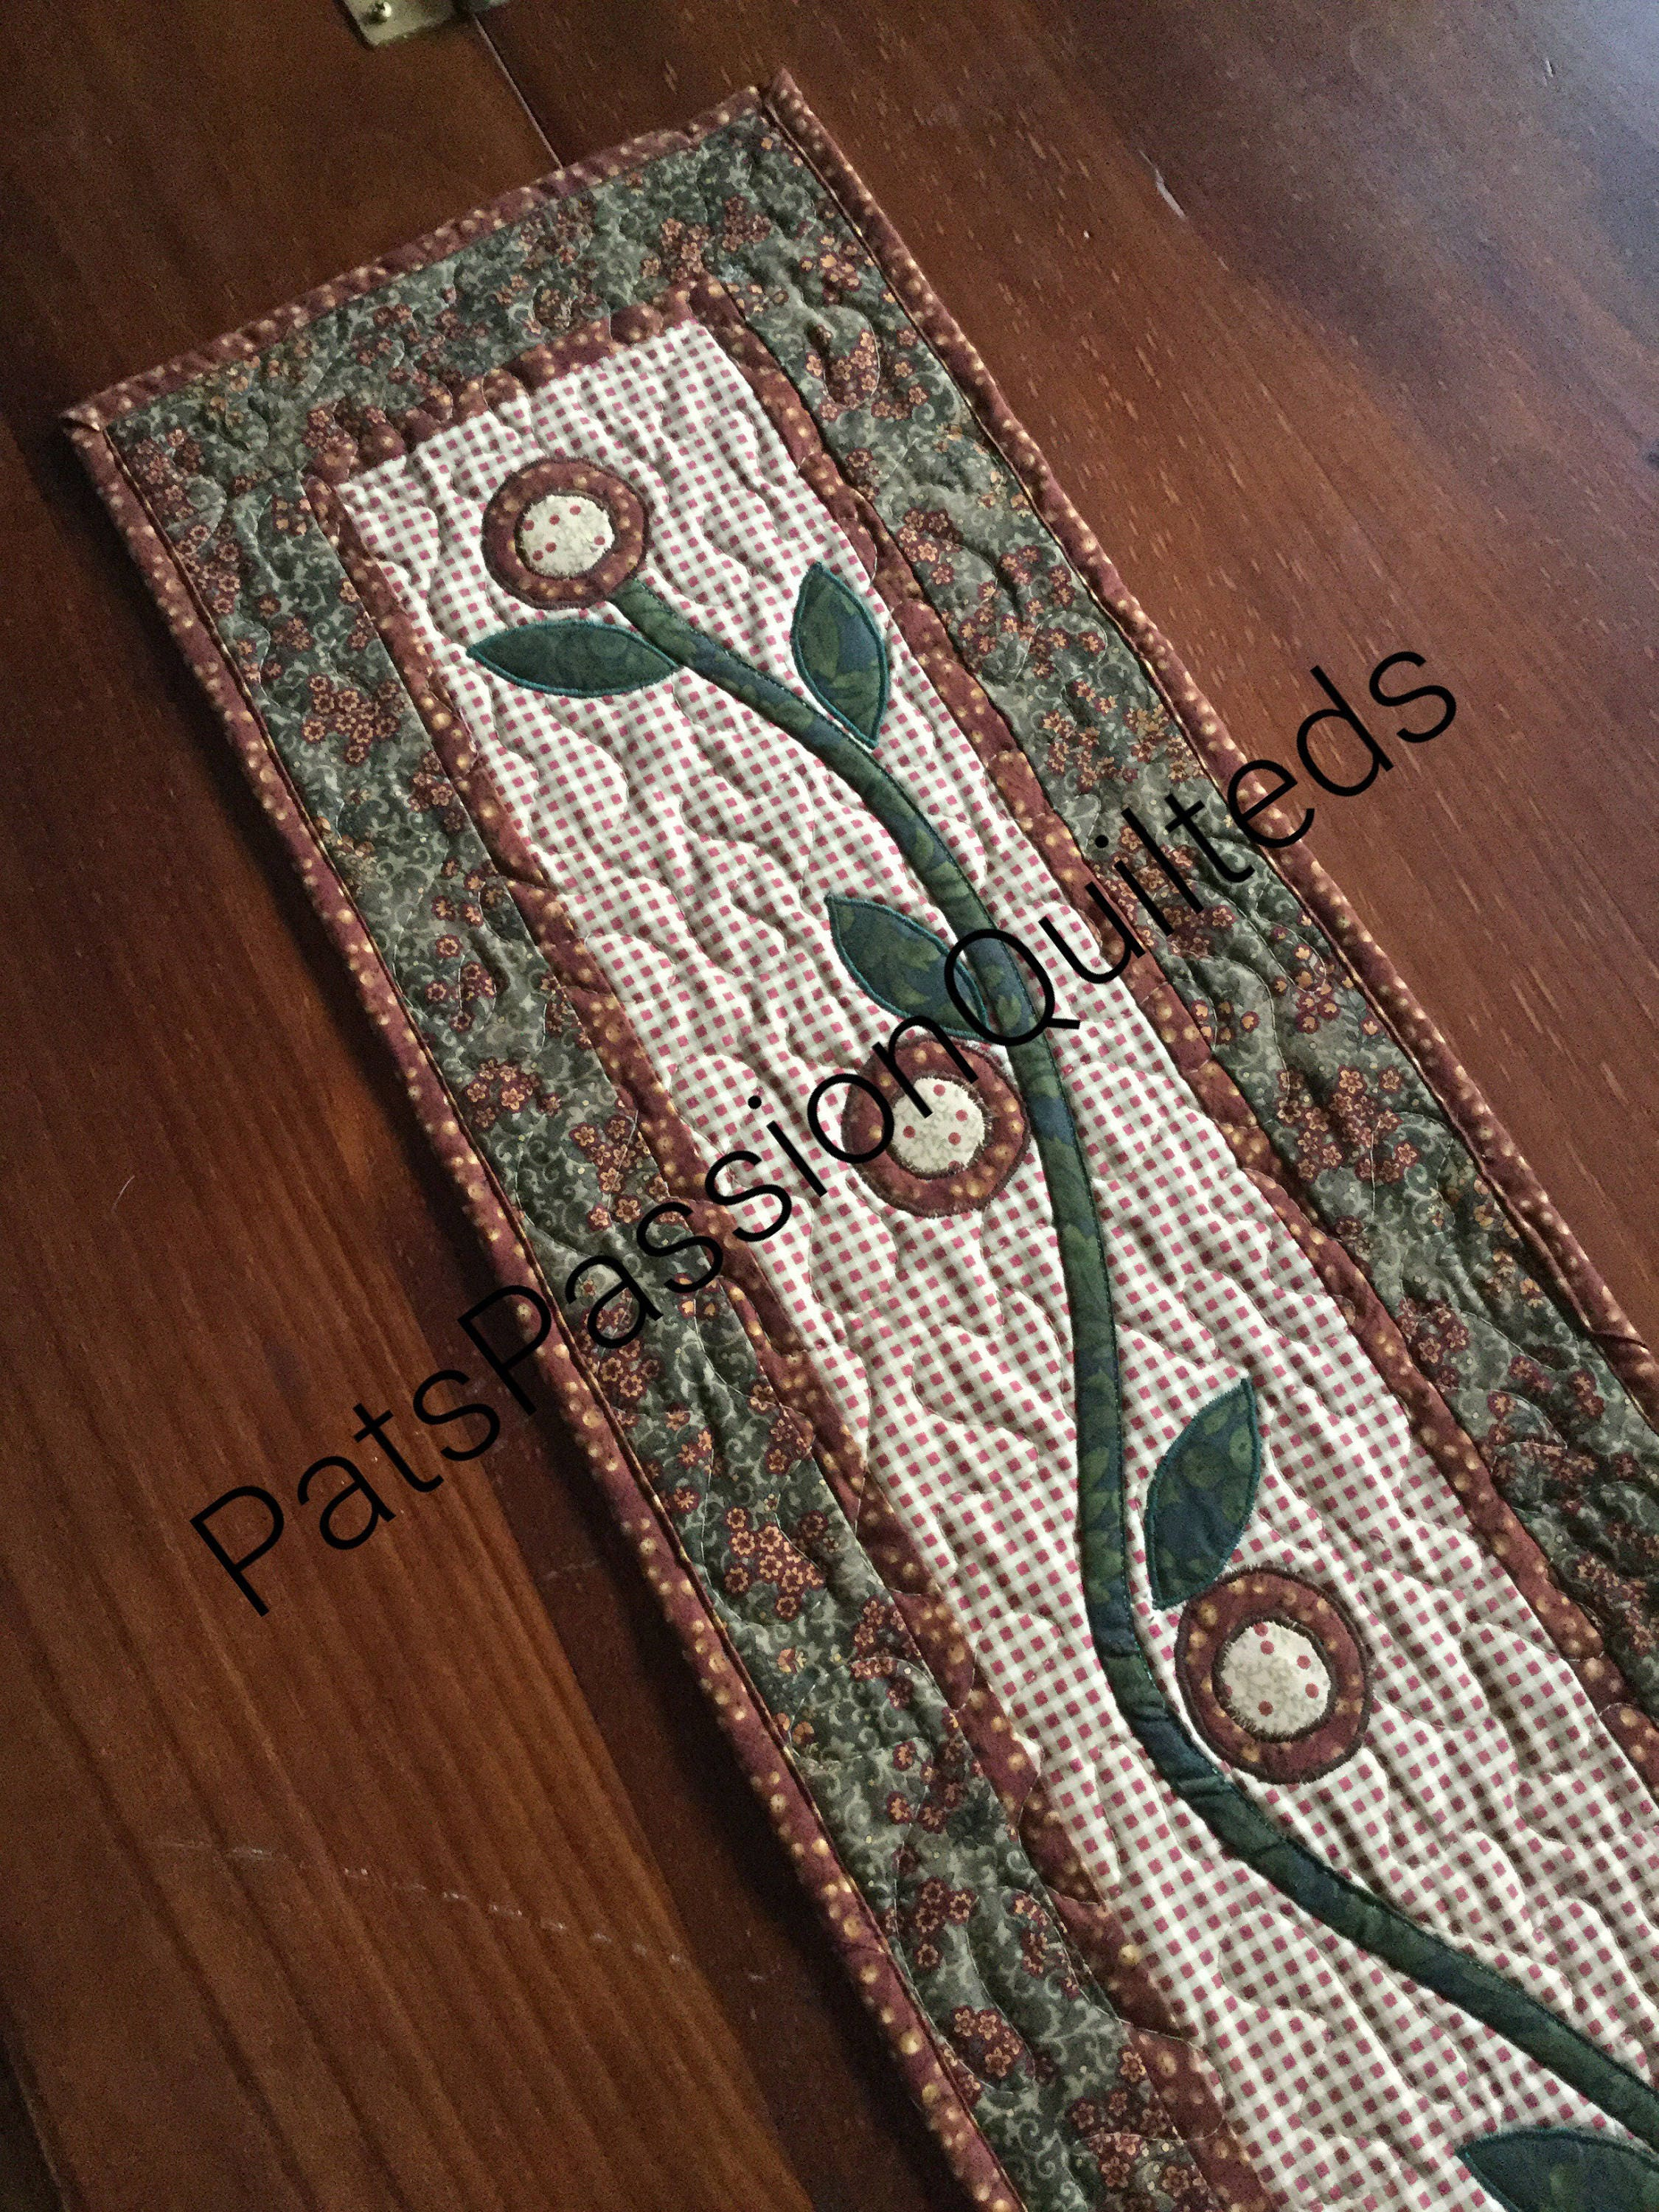 Primitive Country Table Runner, Quilted Repro Table Runner, Applique Quilted  Table Runner, Brown Green Tan Floral Quilted Runner